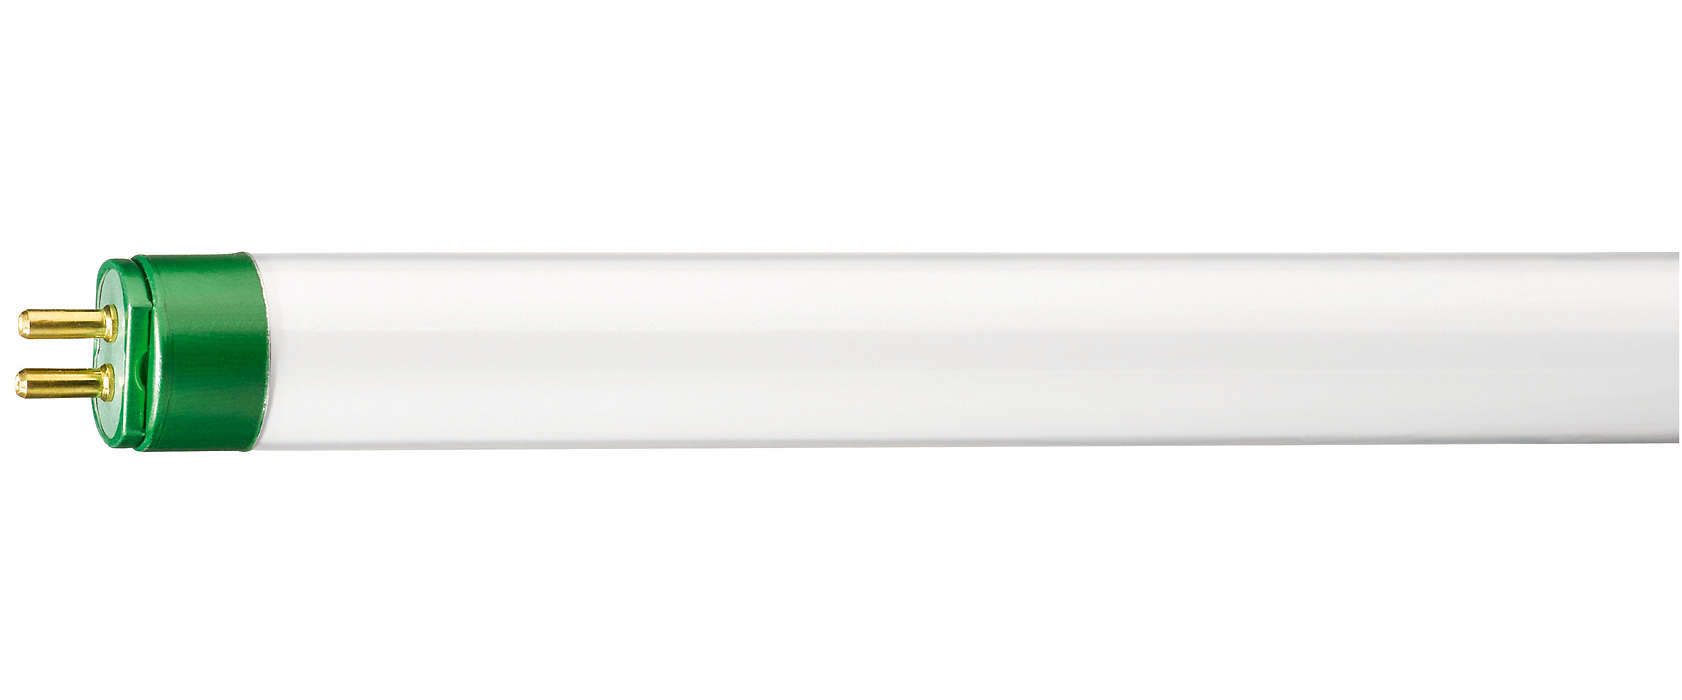 The world's most efficient and brightest fluorescent lighting